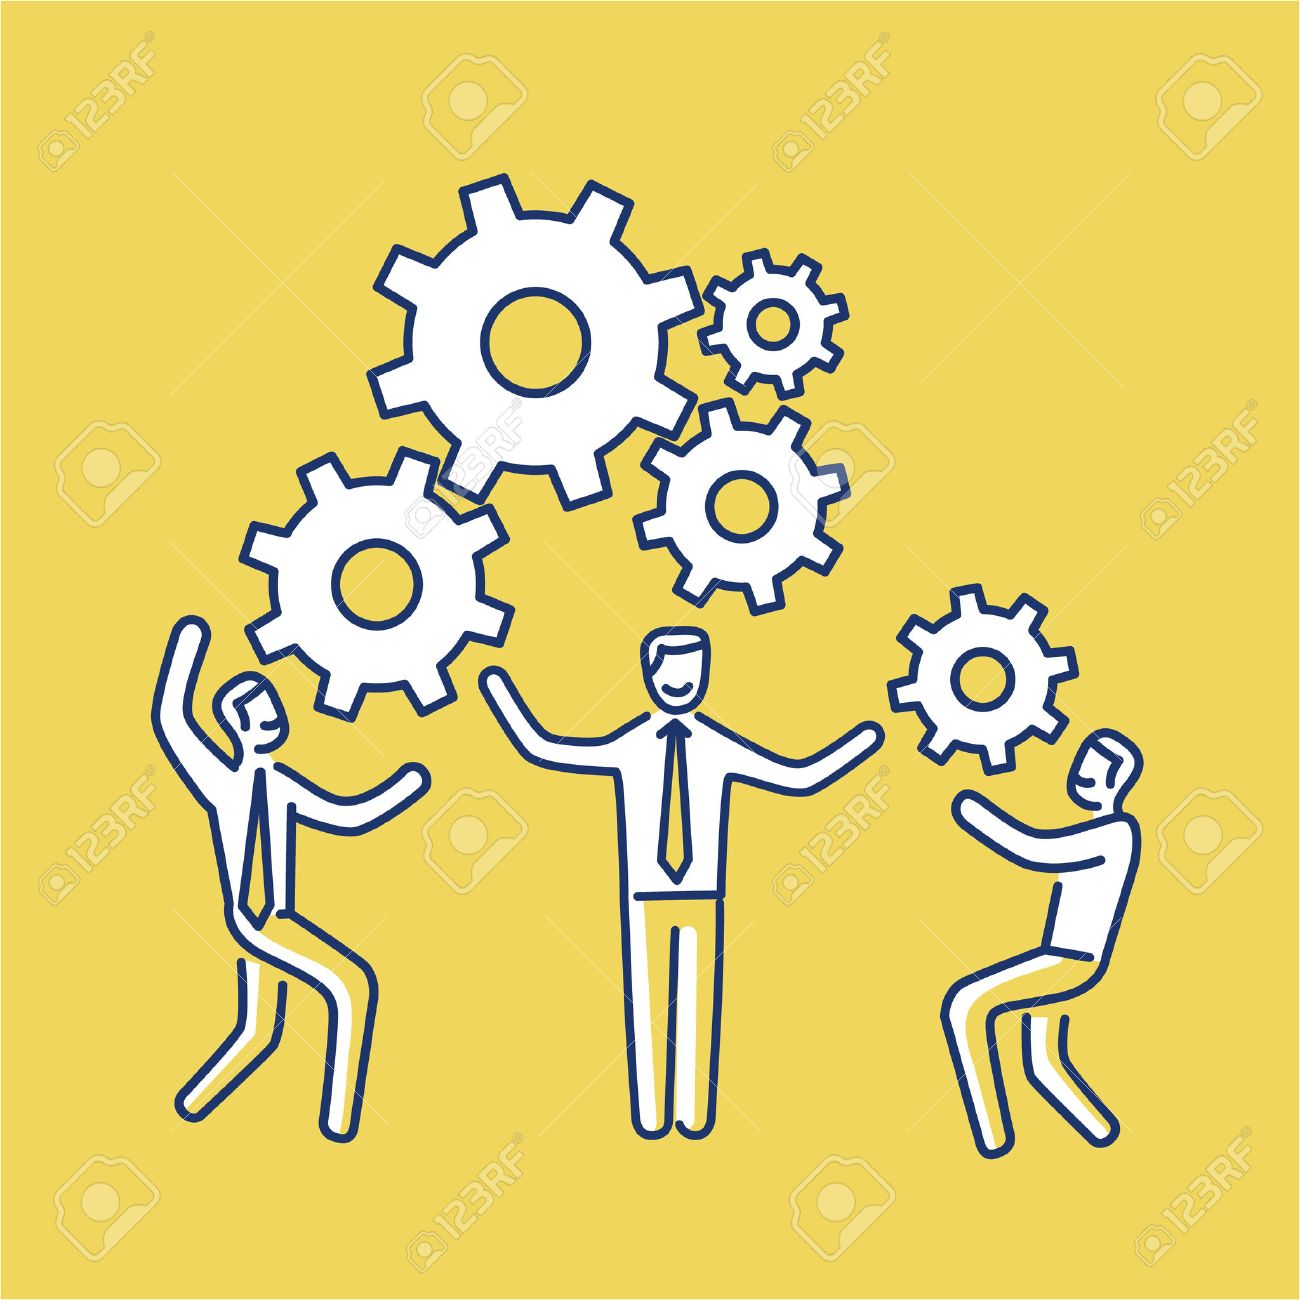 skill stock photos images royalty skill images and pictures skill vector teamwork skills icon of businessmans gears bulding engine together modern flat